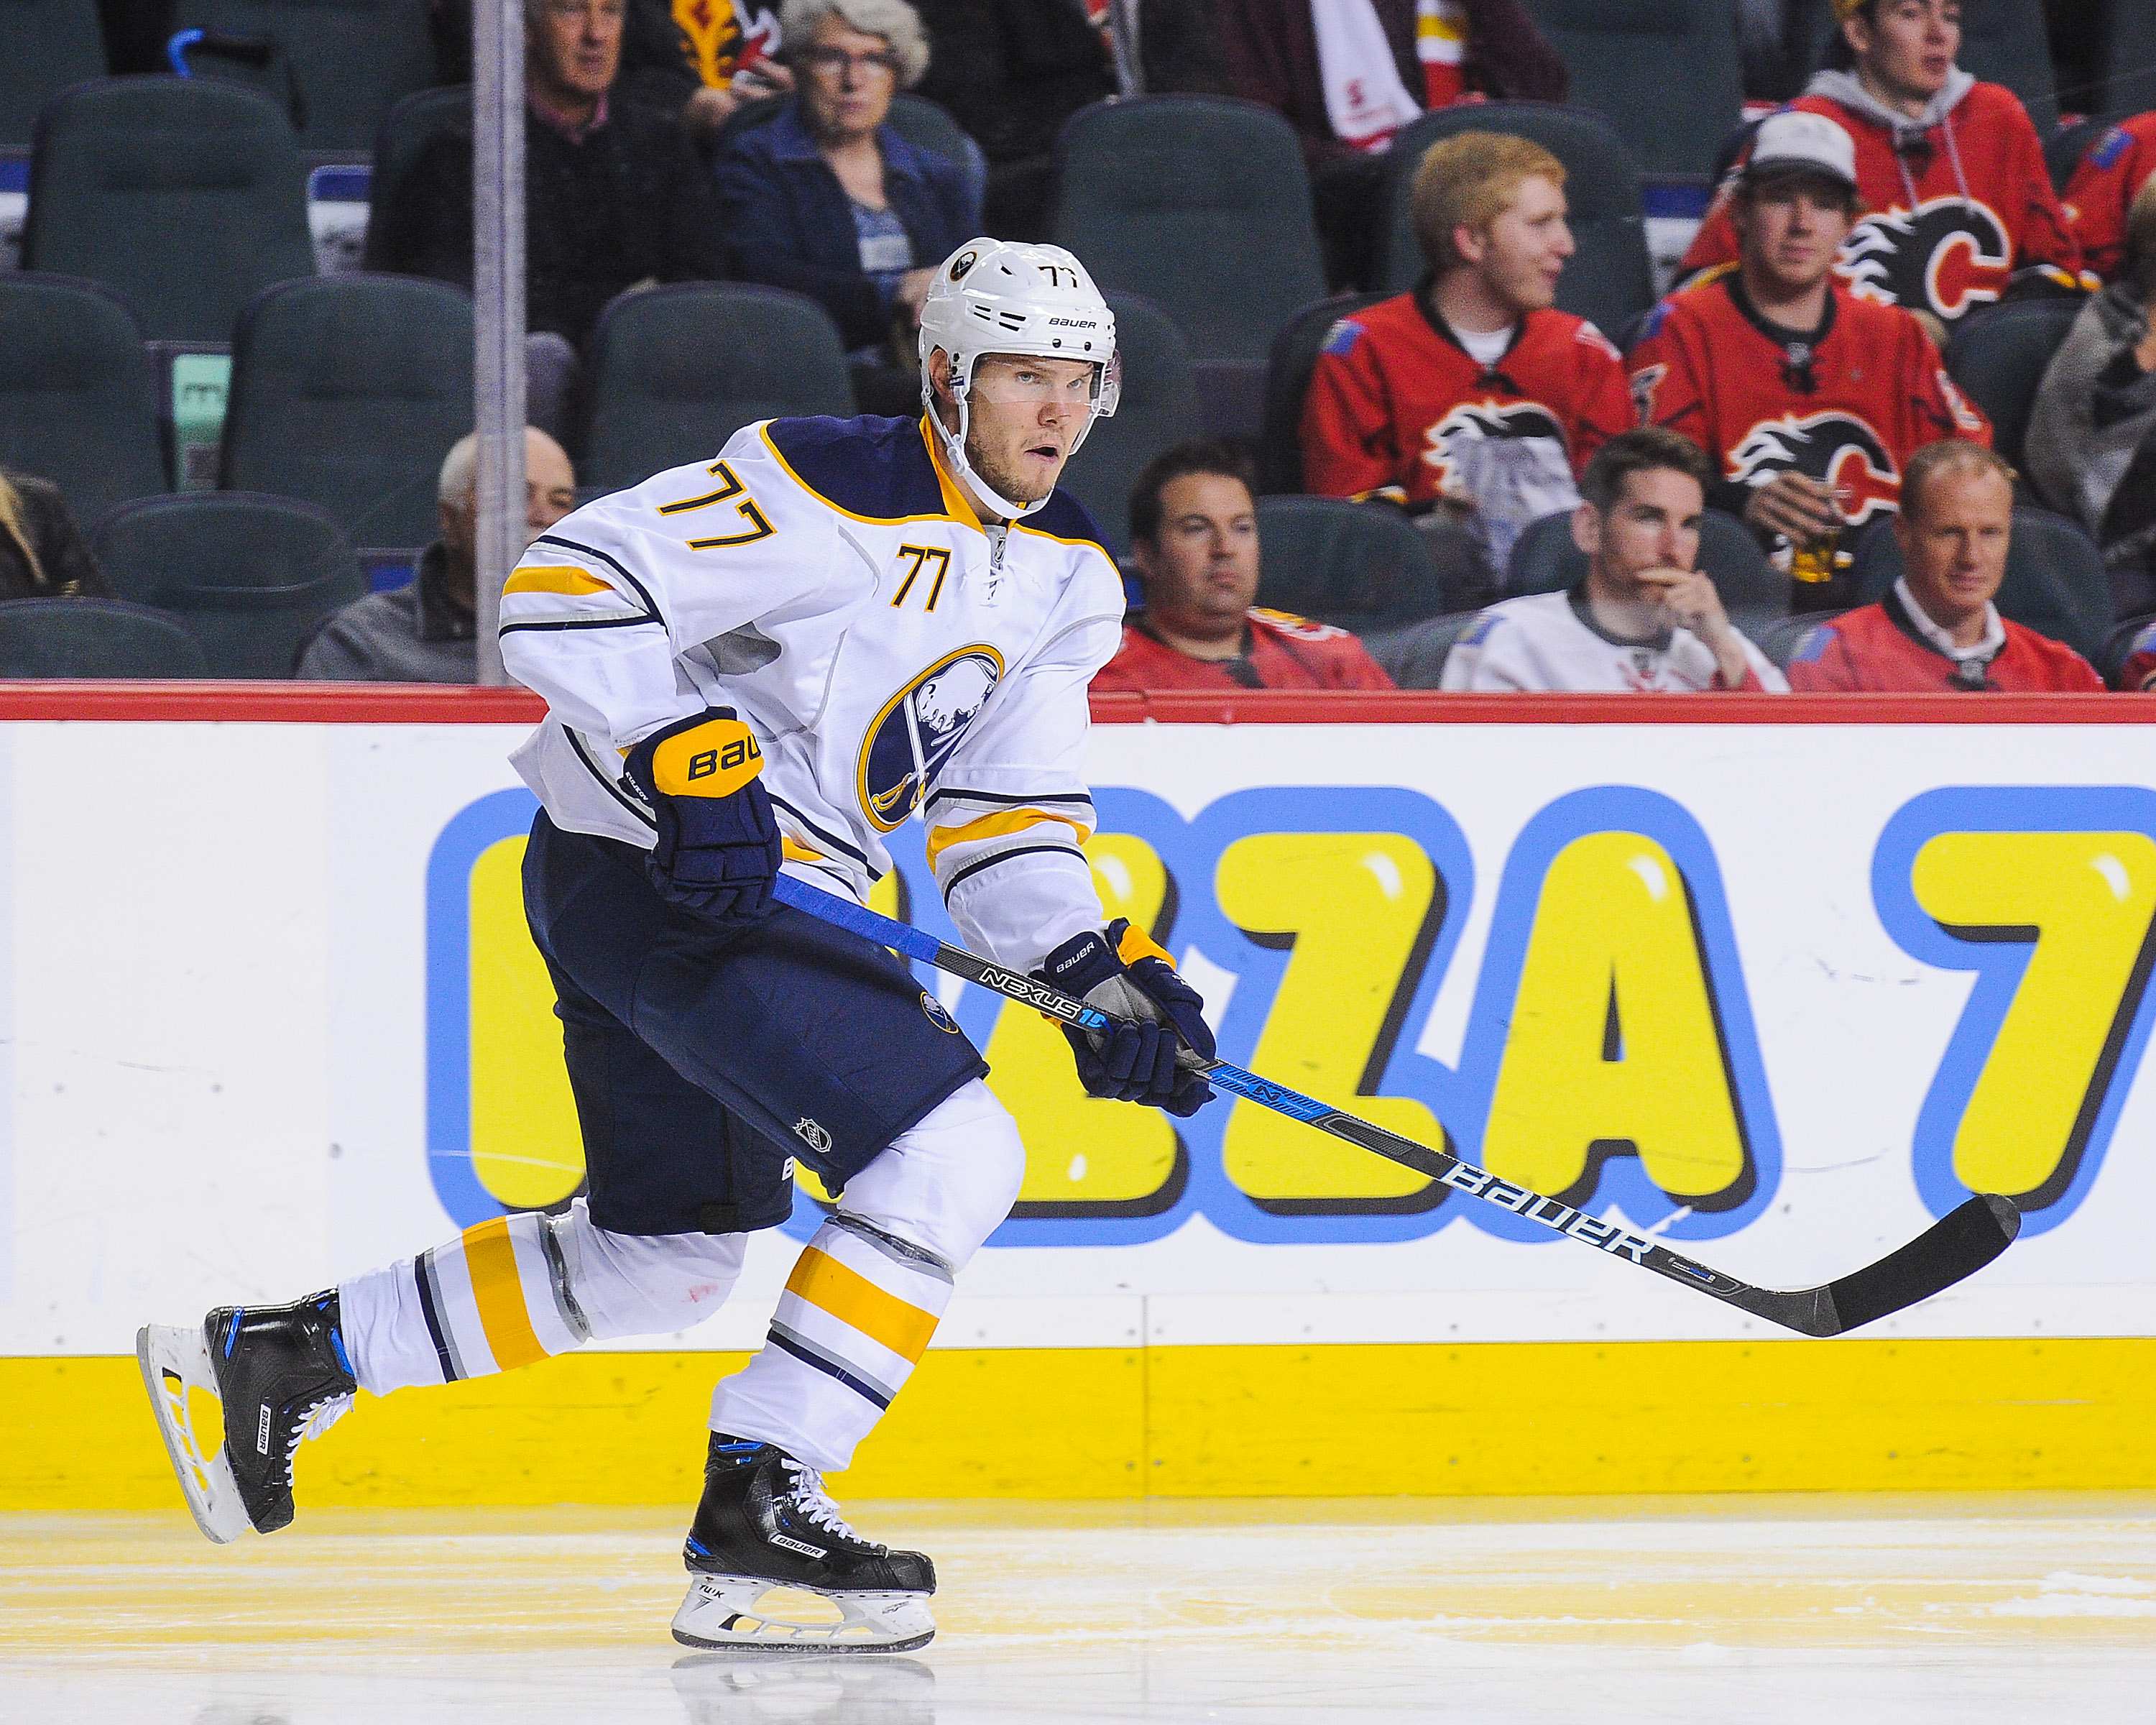 Dmitry Kulikov sees a well-rounded defense corps in Buffalo. (Photo by Derek Leung/Getty Images)